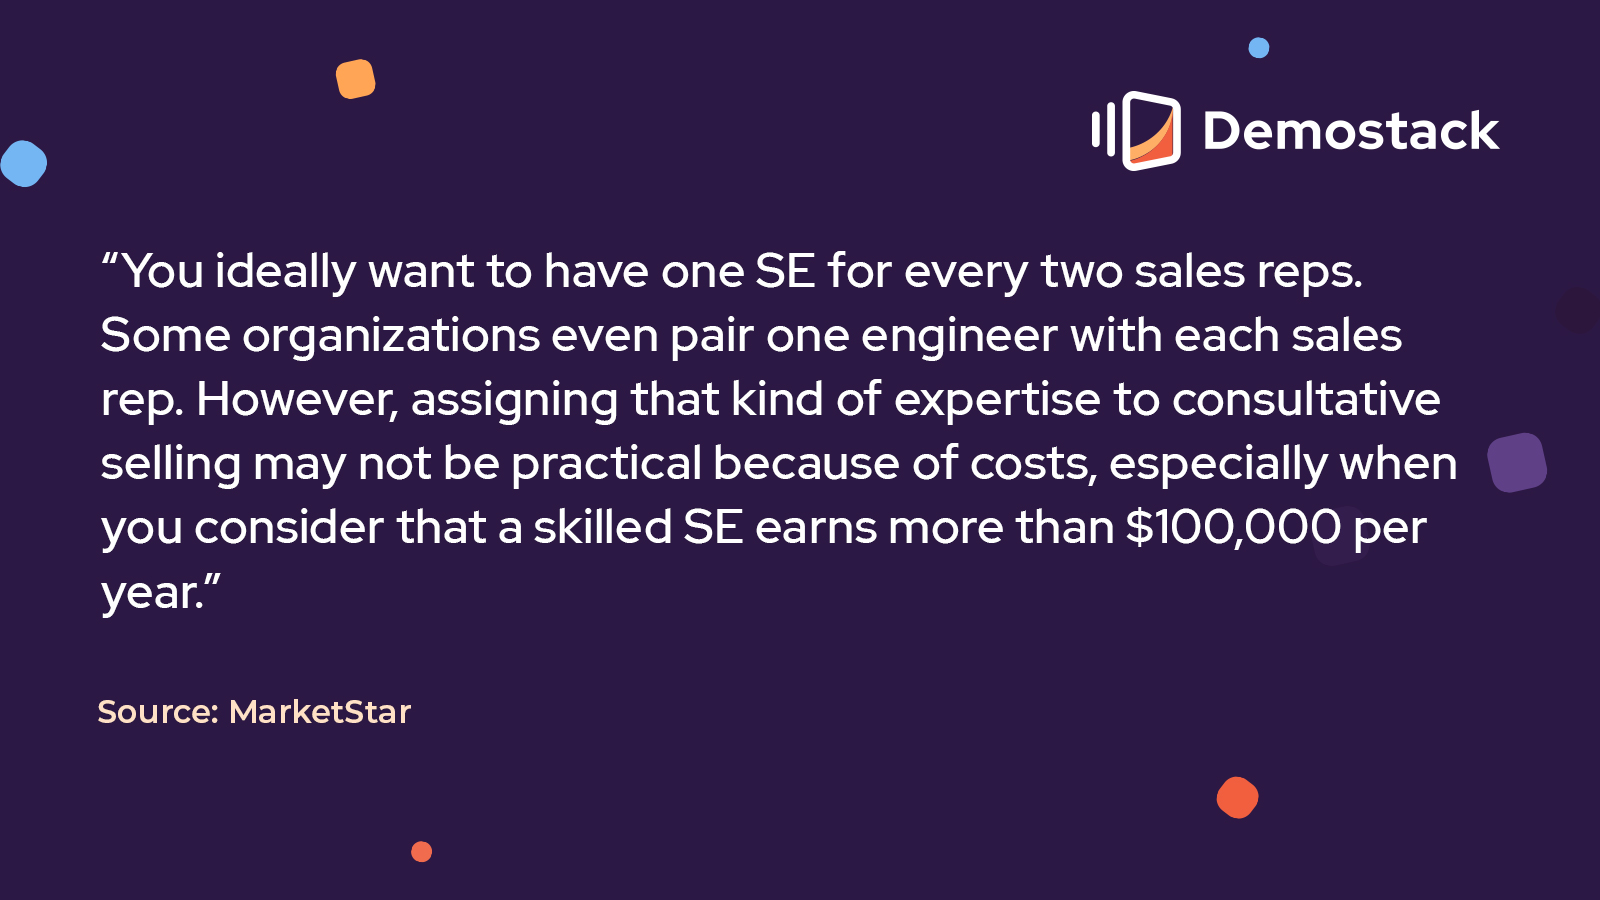 """""""You ideally want to have one SE for every two sales reps. Some organizations even pair one engineer with each sales rep. However, assigning that kind of expertise to consultative selling may not be practical because of costs, especially when you consider that a skilled SE earns more than $100,000 per year,"""" reports MarketStar."""